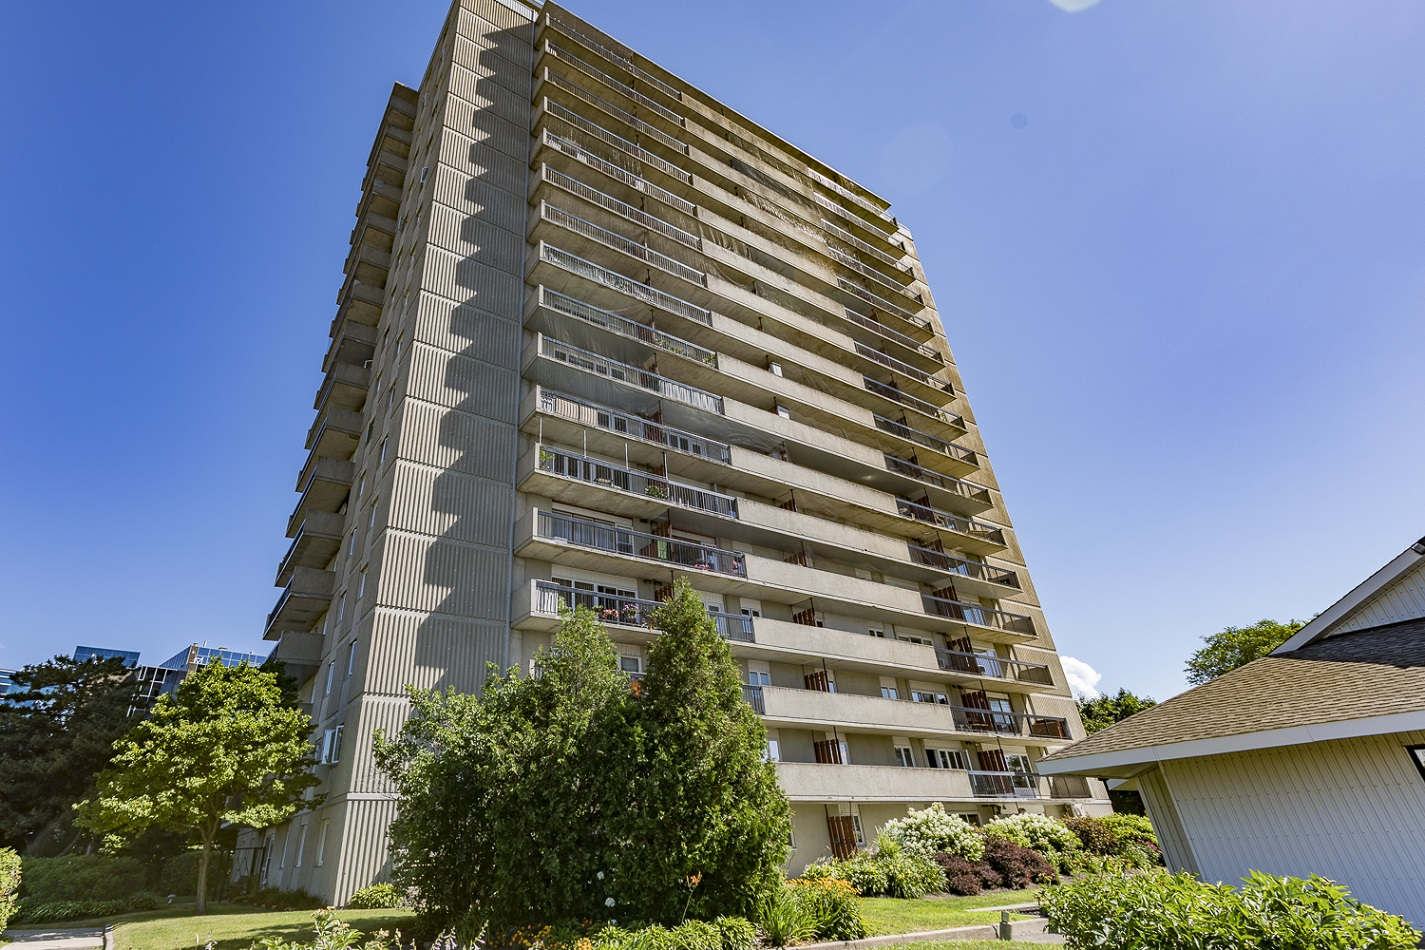 158A McArthur Avenue Unit 1603 | Well-Maintained 2 Bedroom Condo In Chateau Vanier